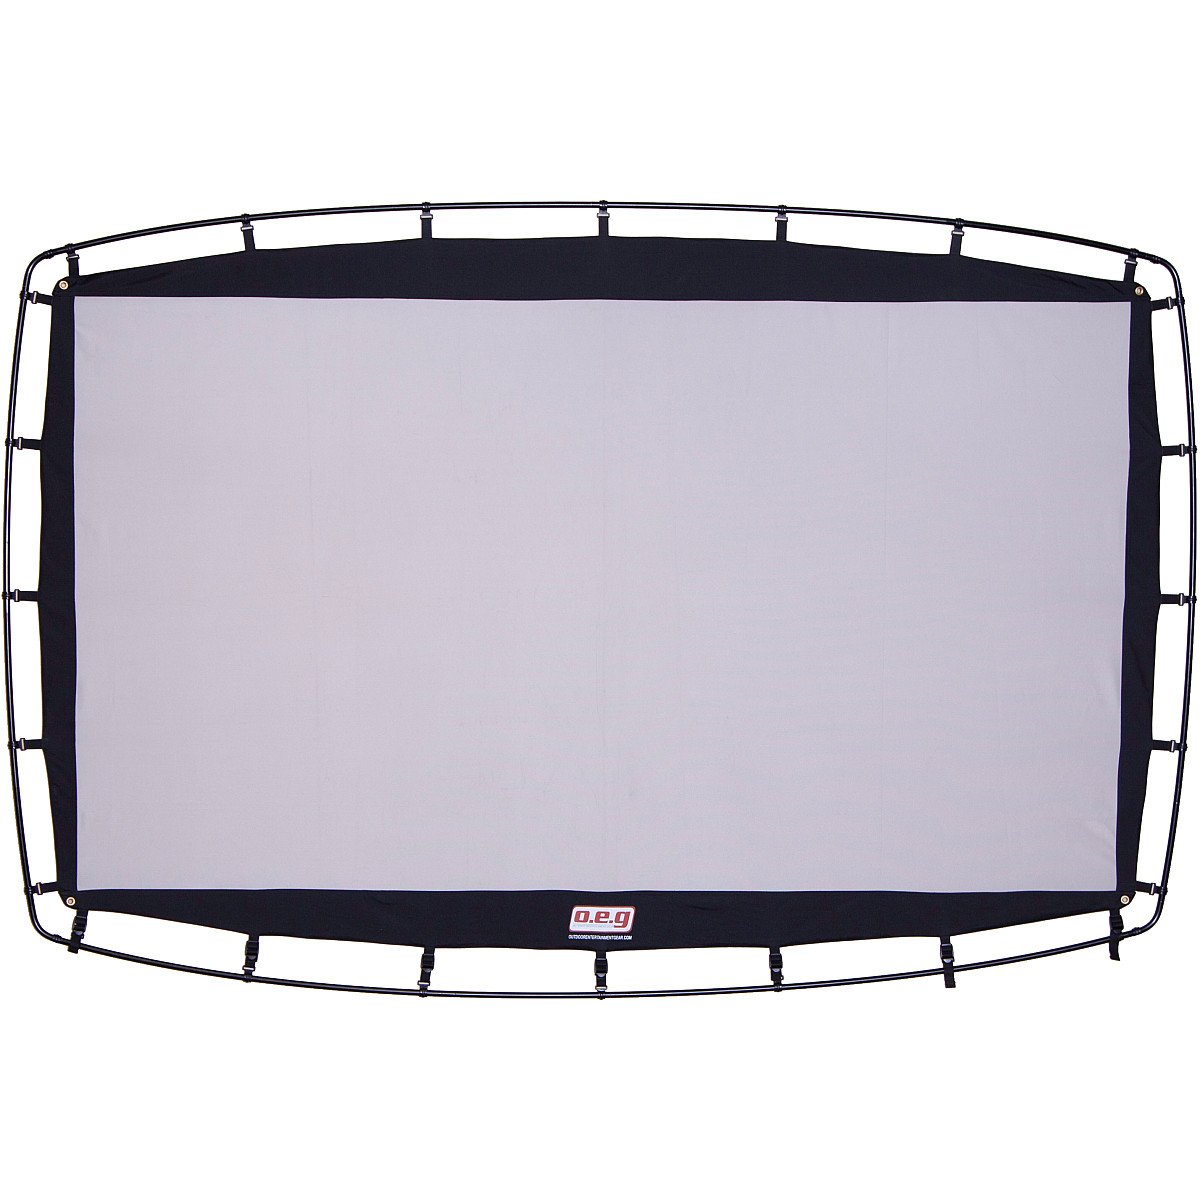 large projection screens China large projection screens catalog of 200 inch 4: 3, foldable outdoor portable light weight rear projection movie screen, fast fold portable 250 rear projector.